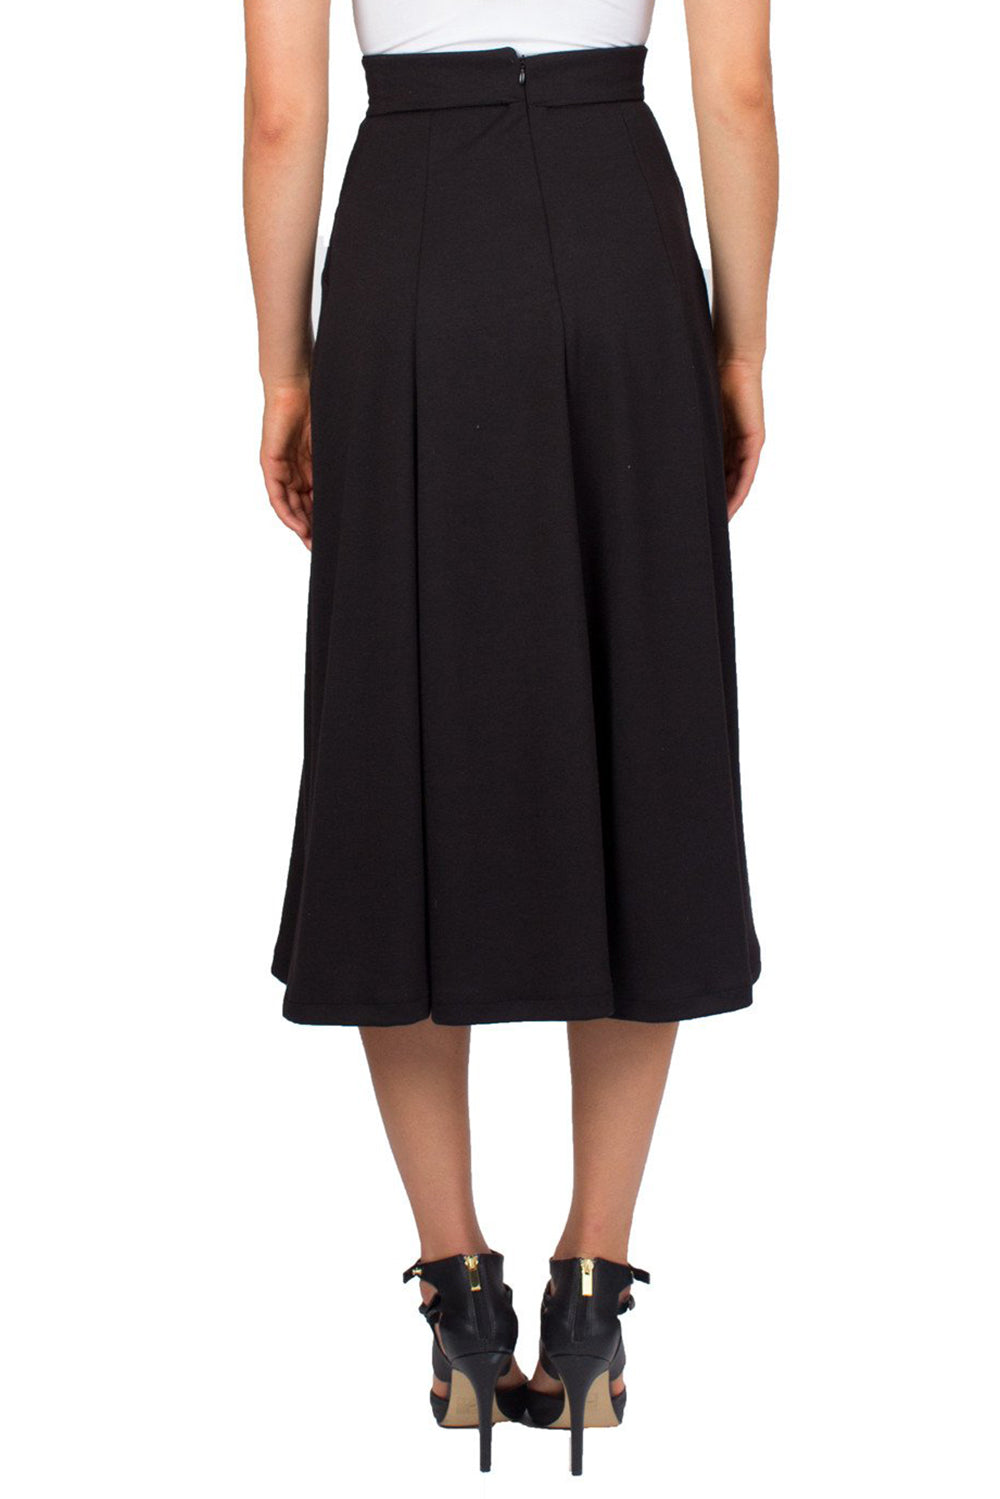 Black Swing Midi Skirt With Slant Pockets and Notch Detail on Waist - Tetiana K - 4